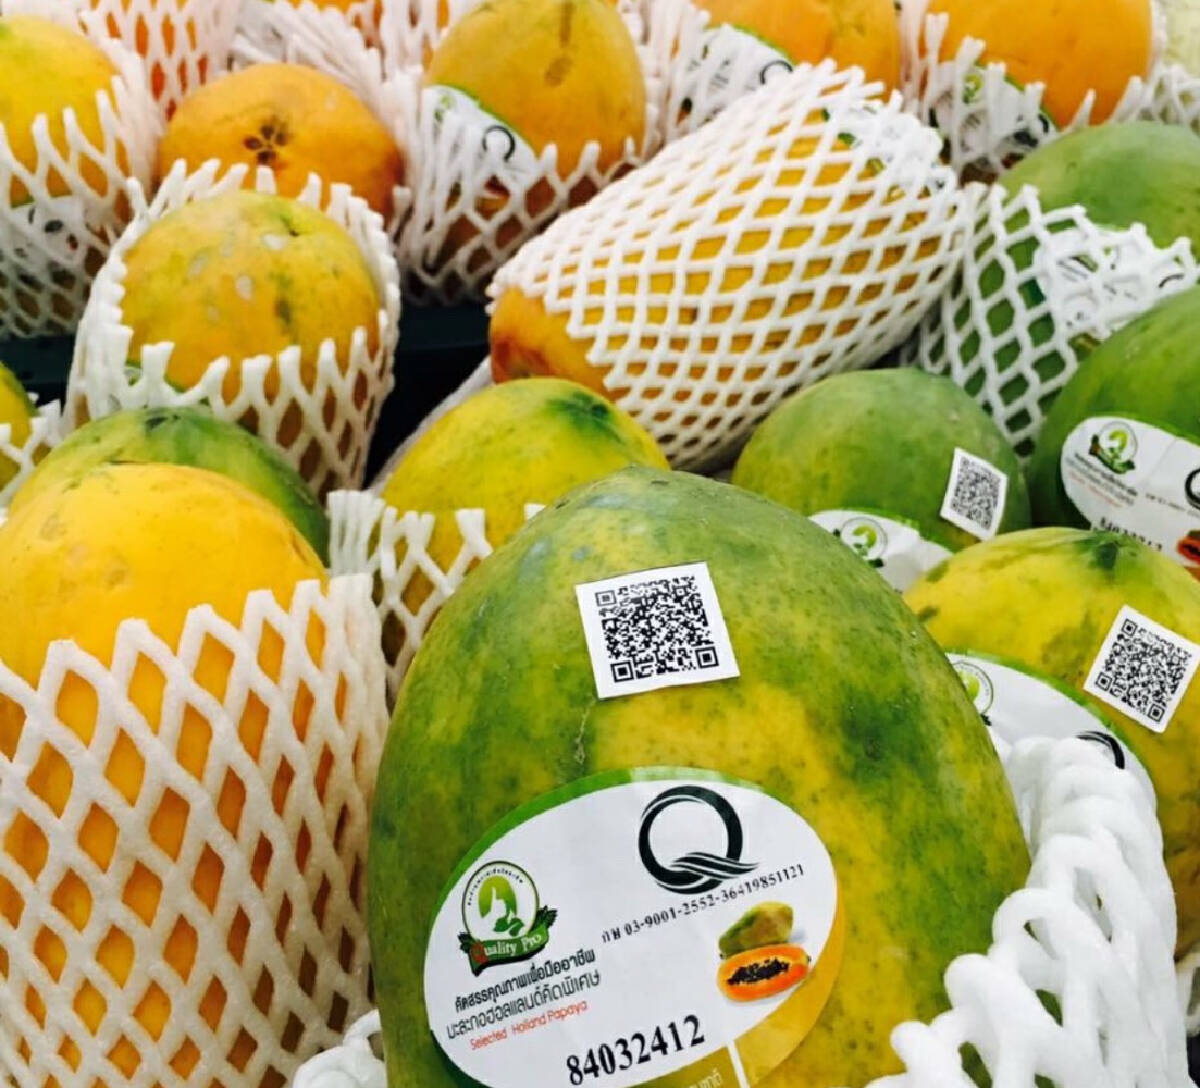 Gov't promotes new 'Q' mark assuring quality food products